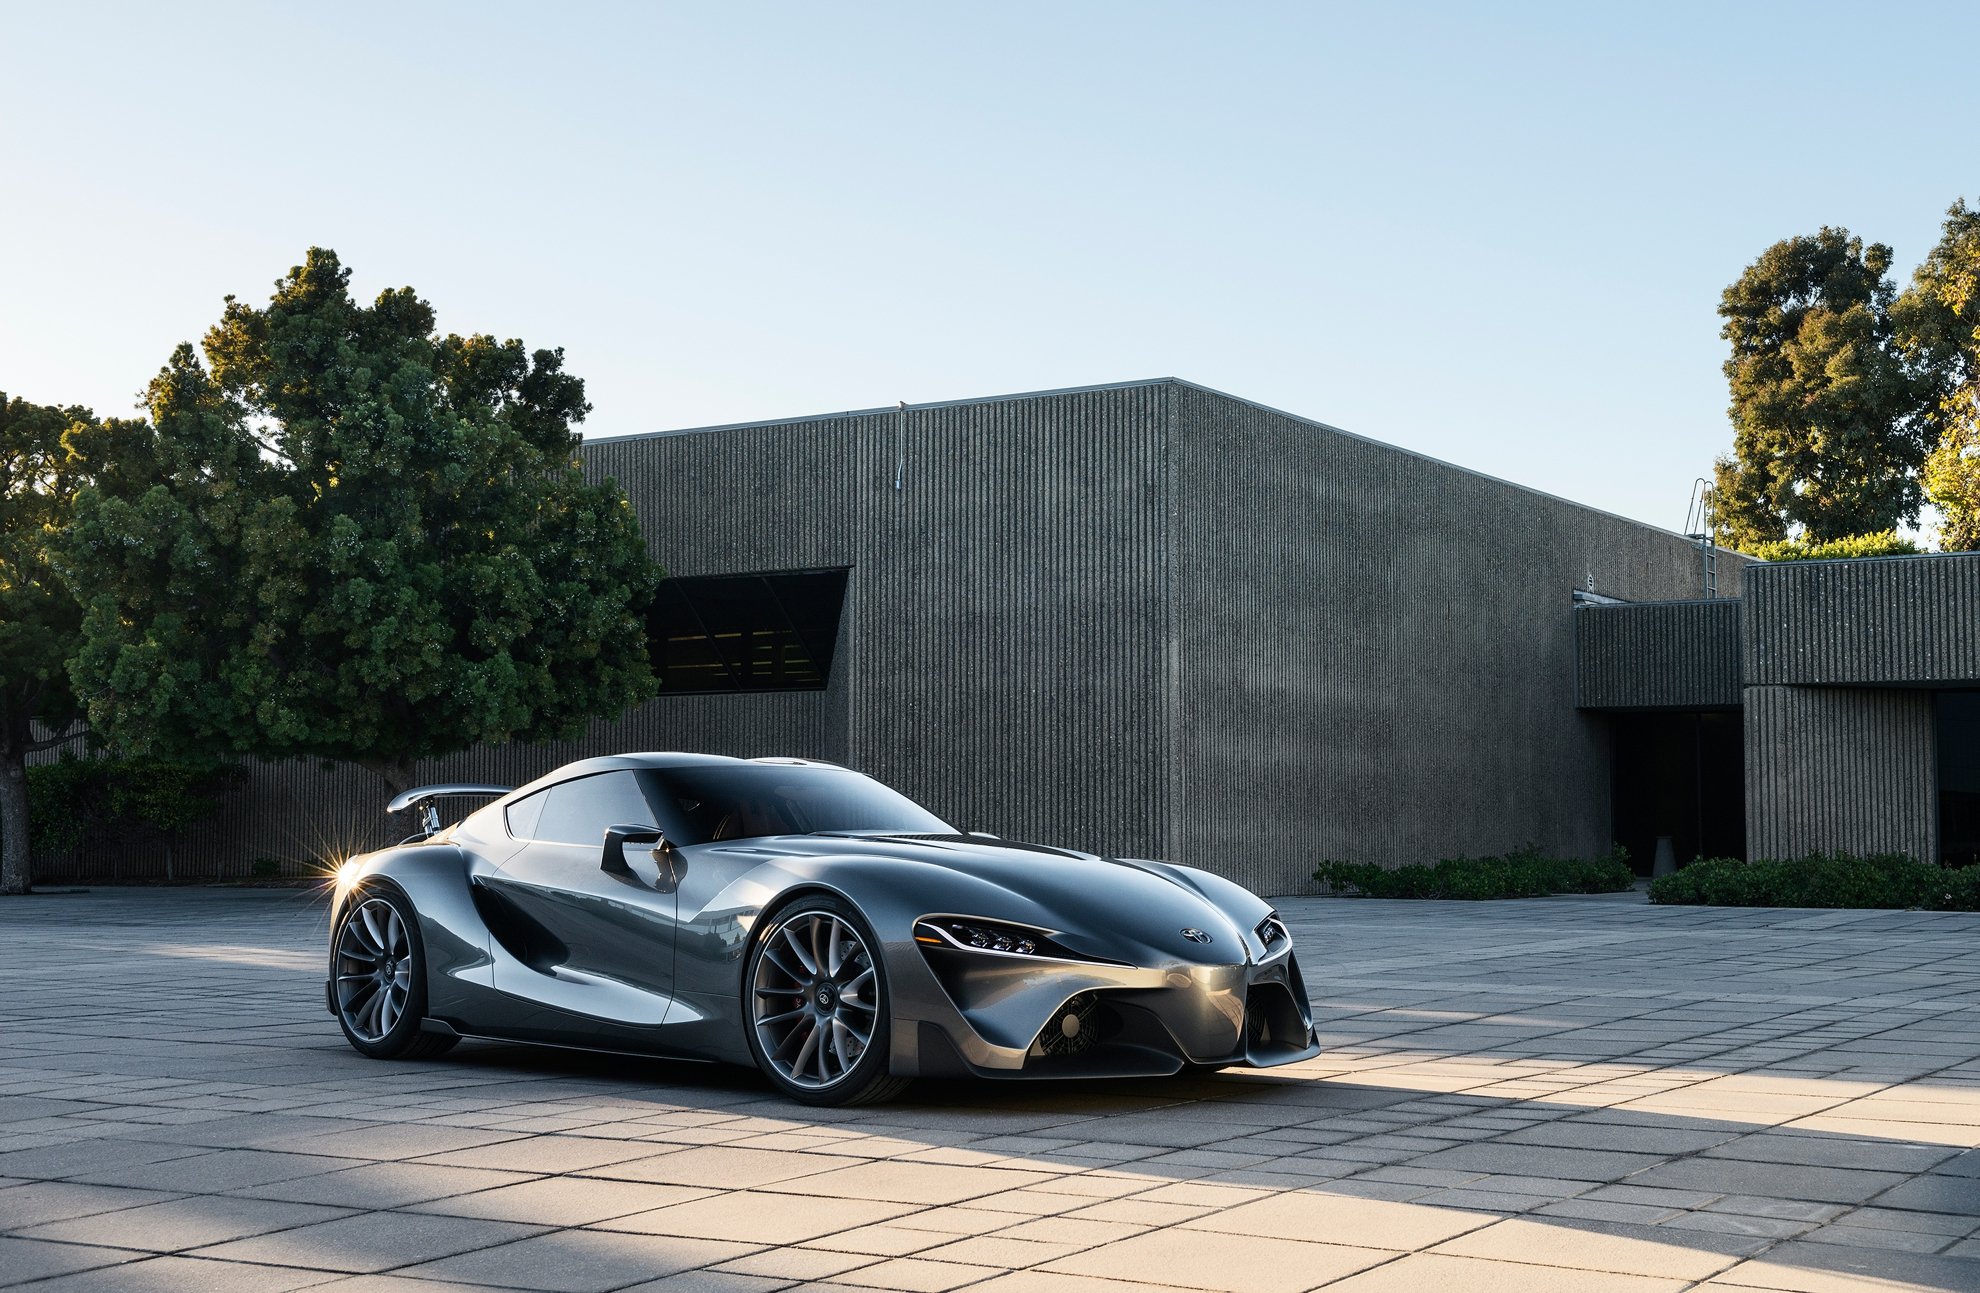 Toyota-F1-GT-Concept-Car